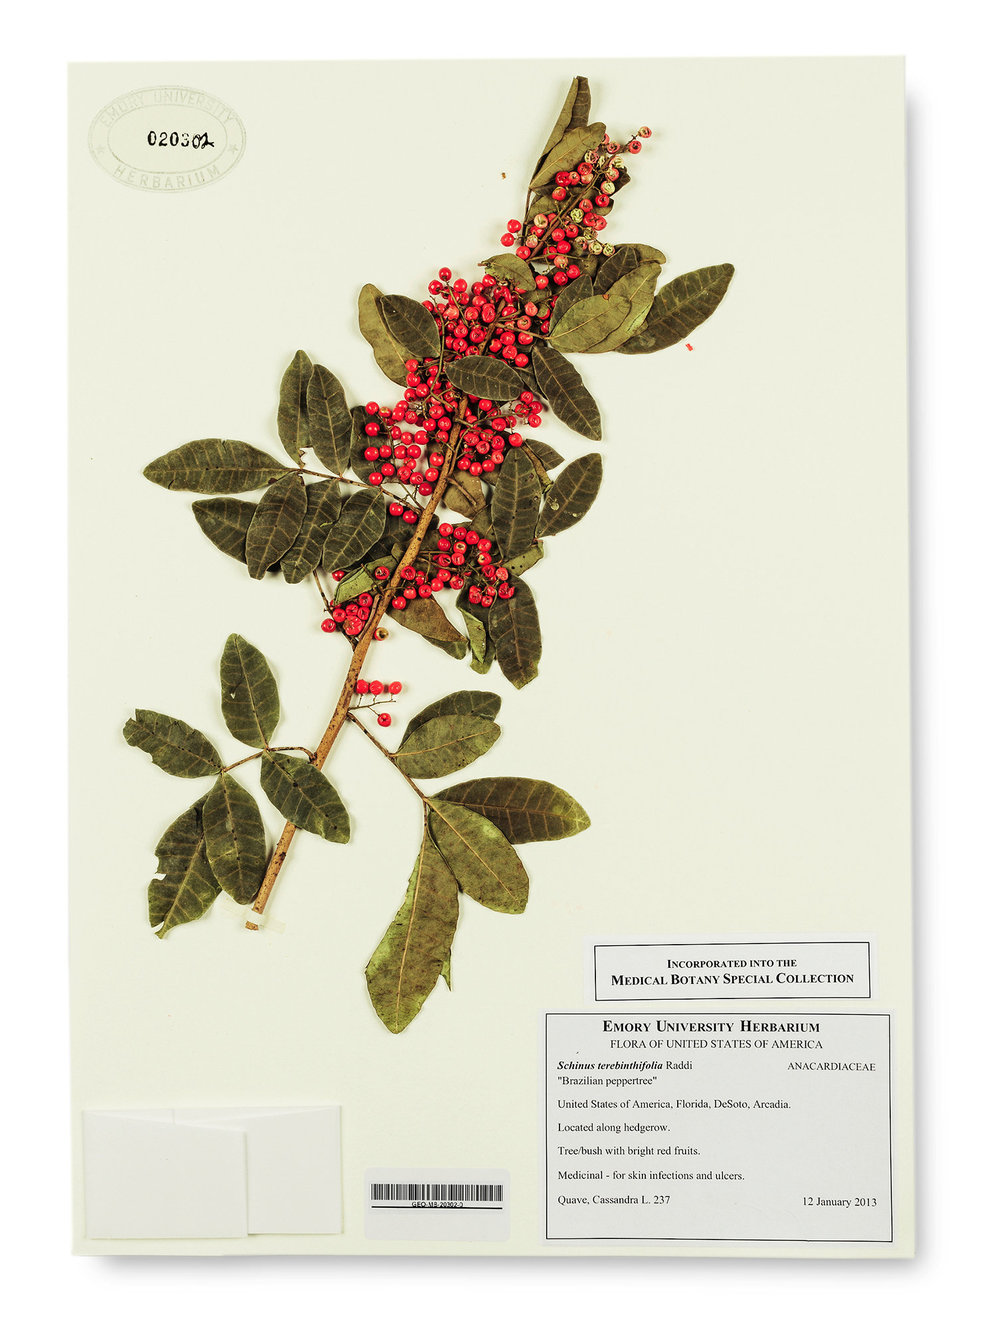 Brazilian peppertree, which is being studied for antibiotic potential.Credit: Damon Casarez for The New York Times